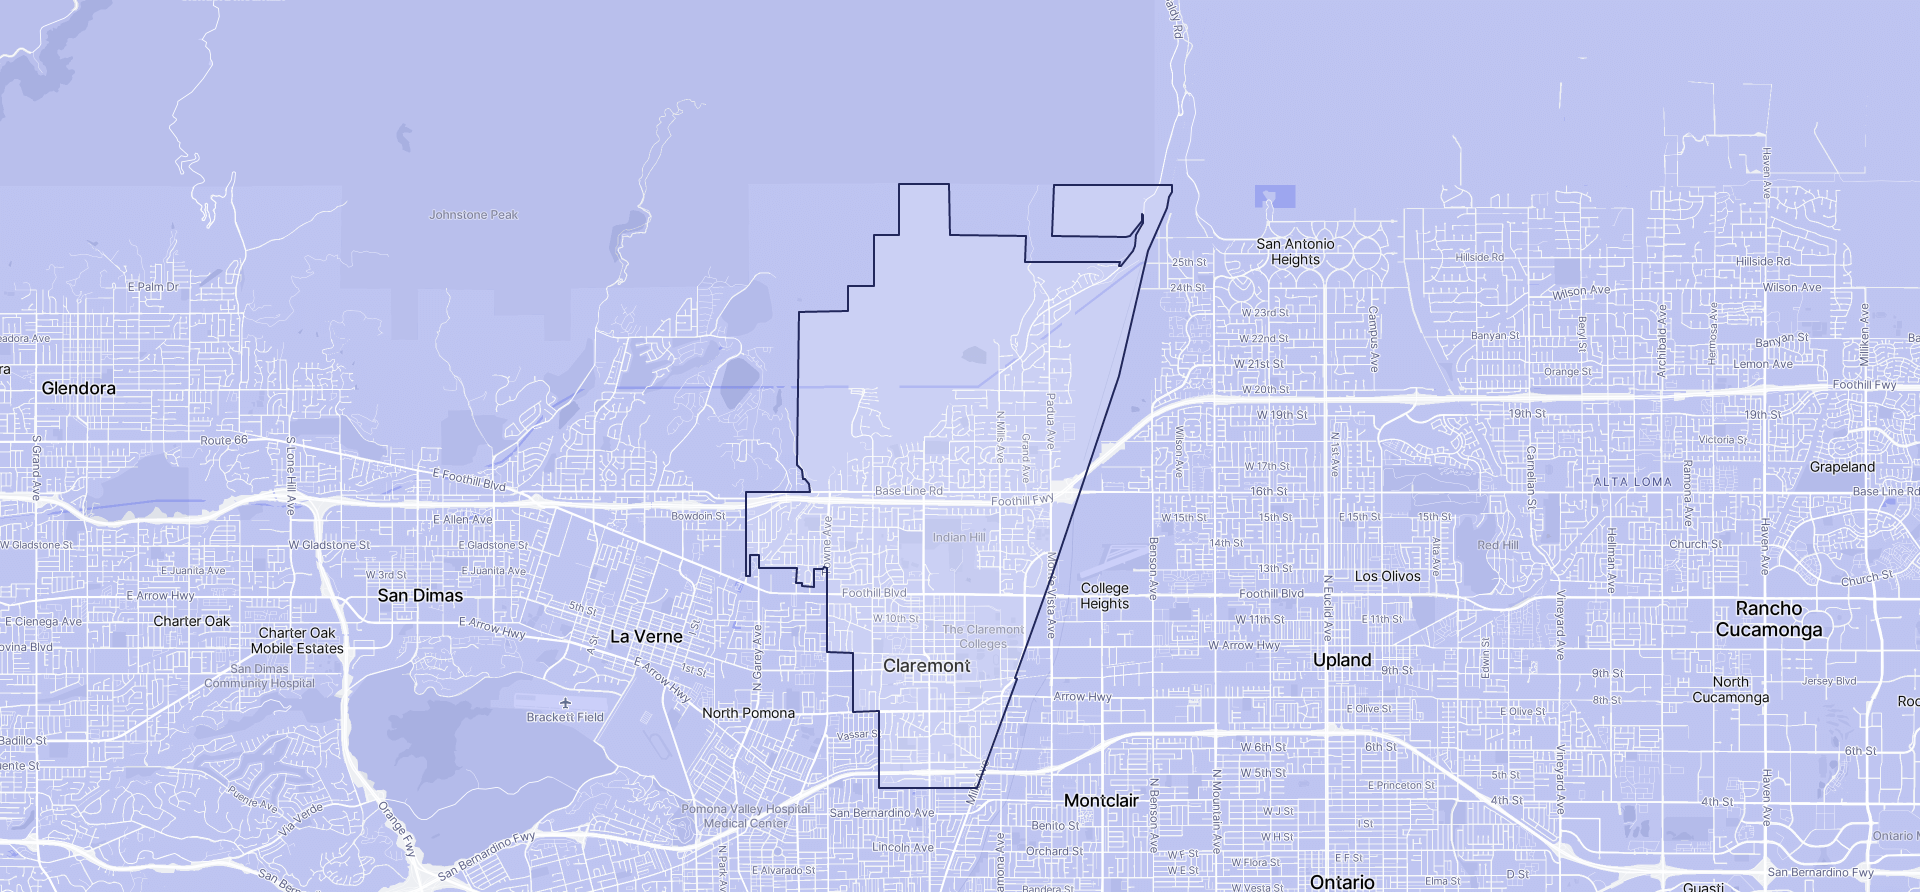 Image of Claremont boundaries on a map.